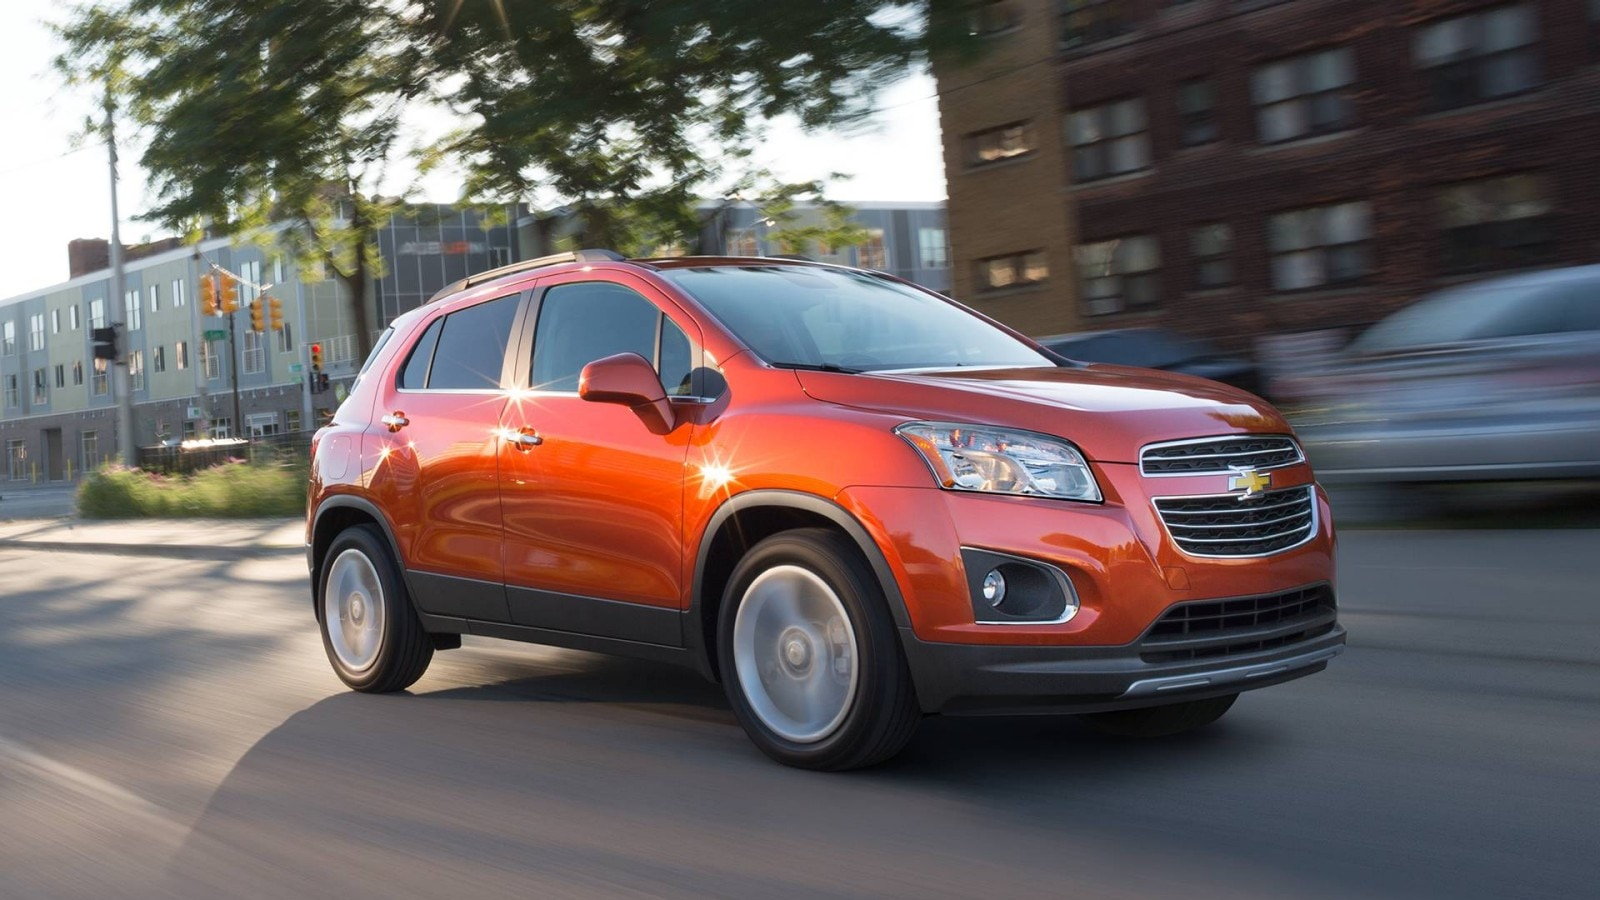 2016 Chevy Trax for sale in Cincinnati